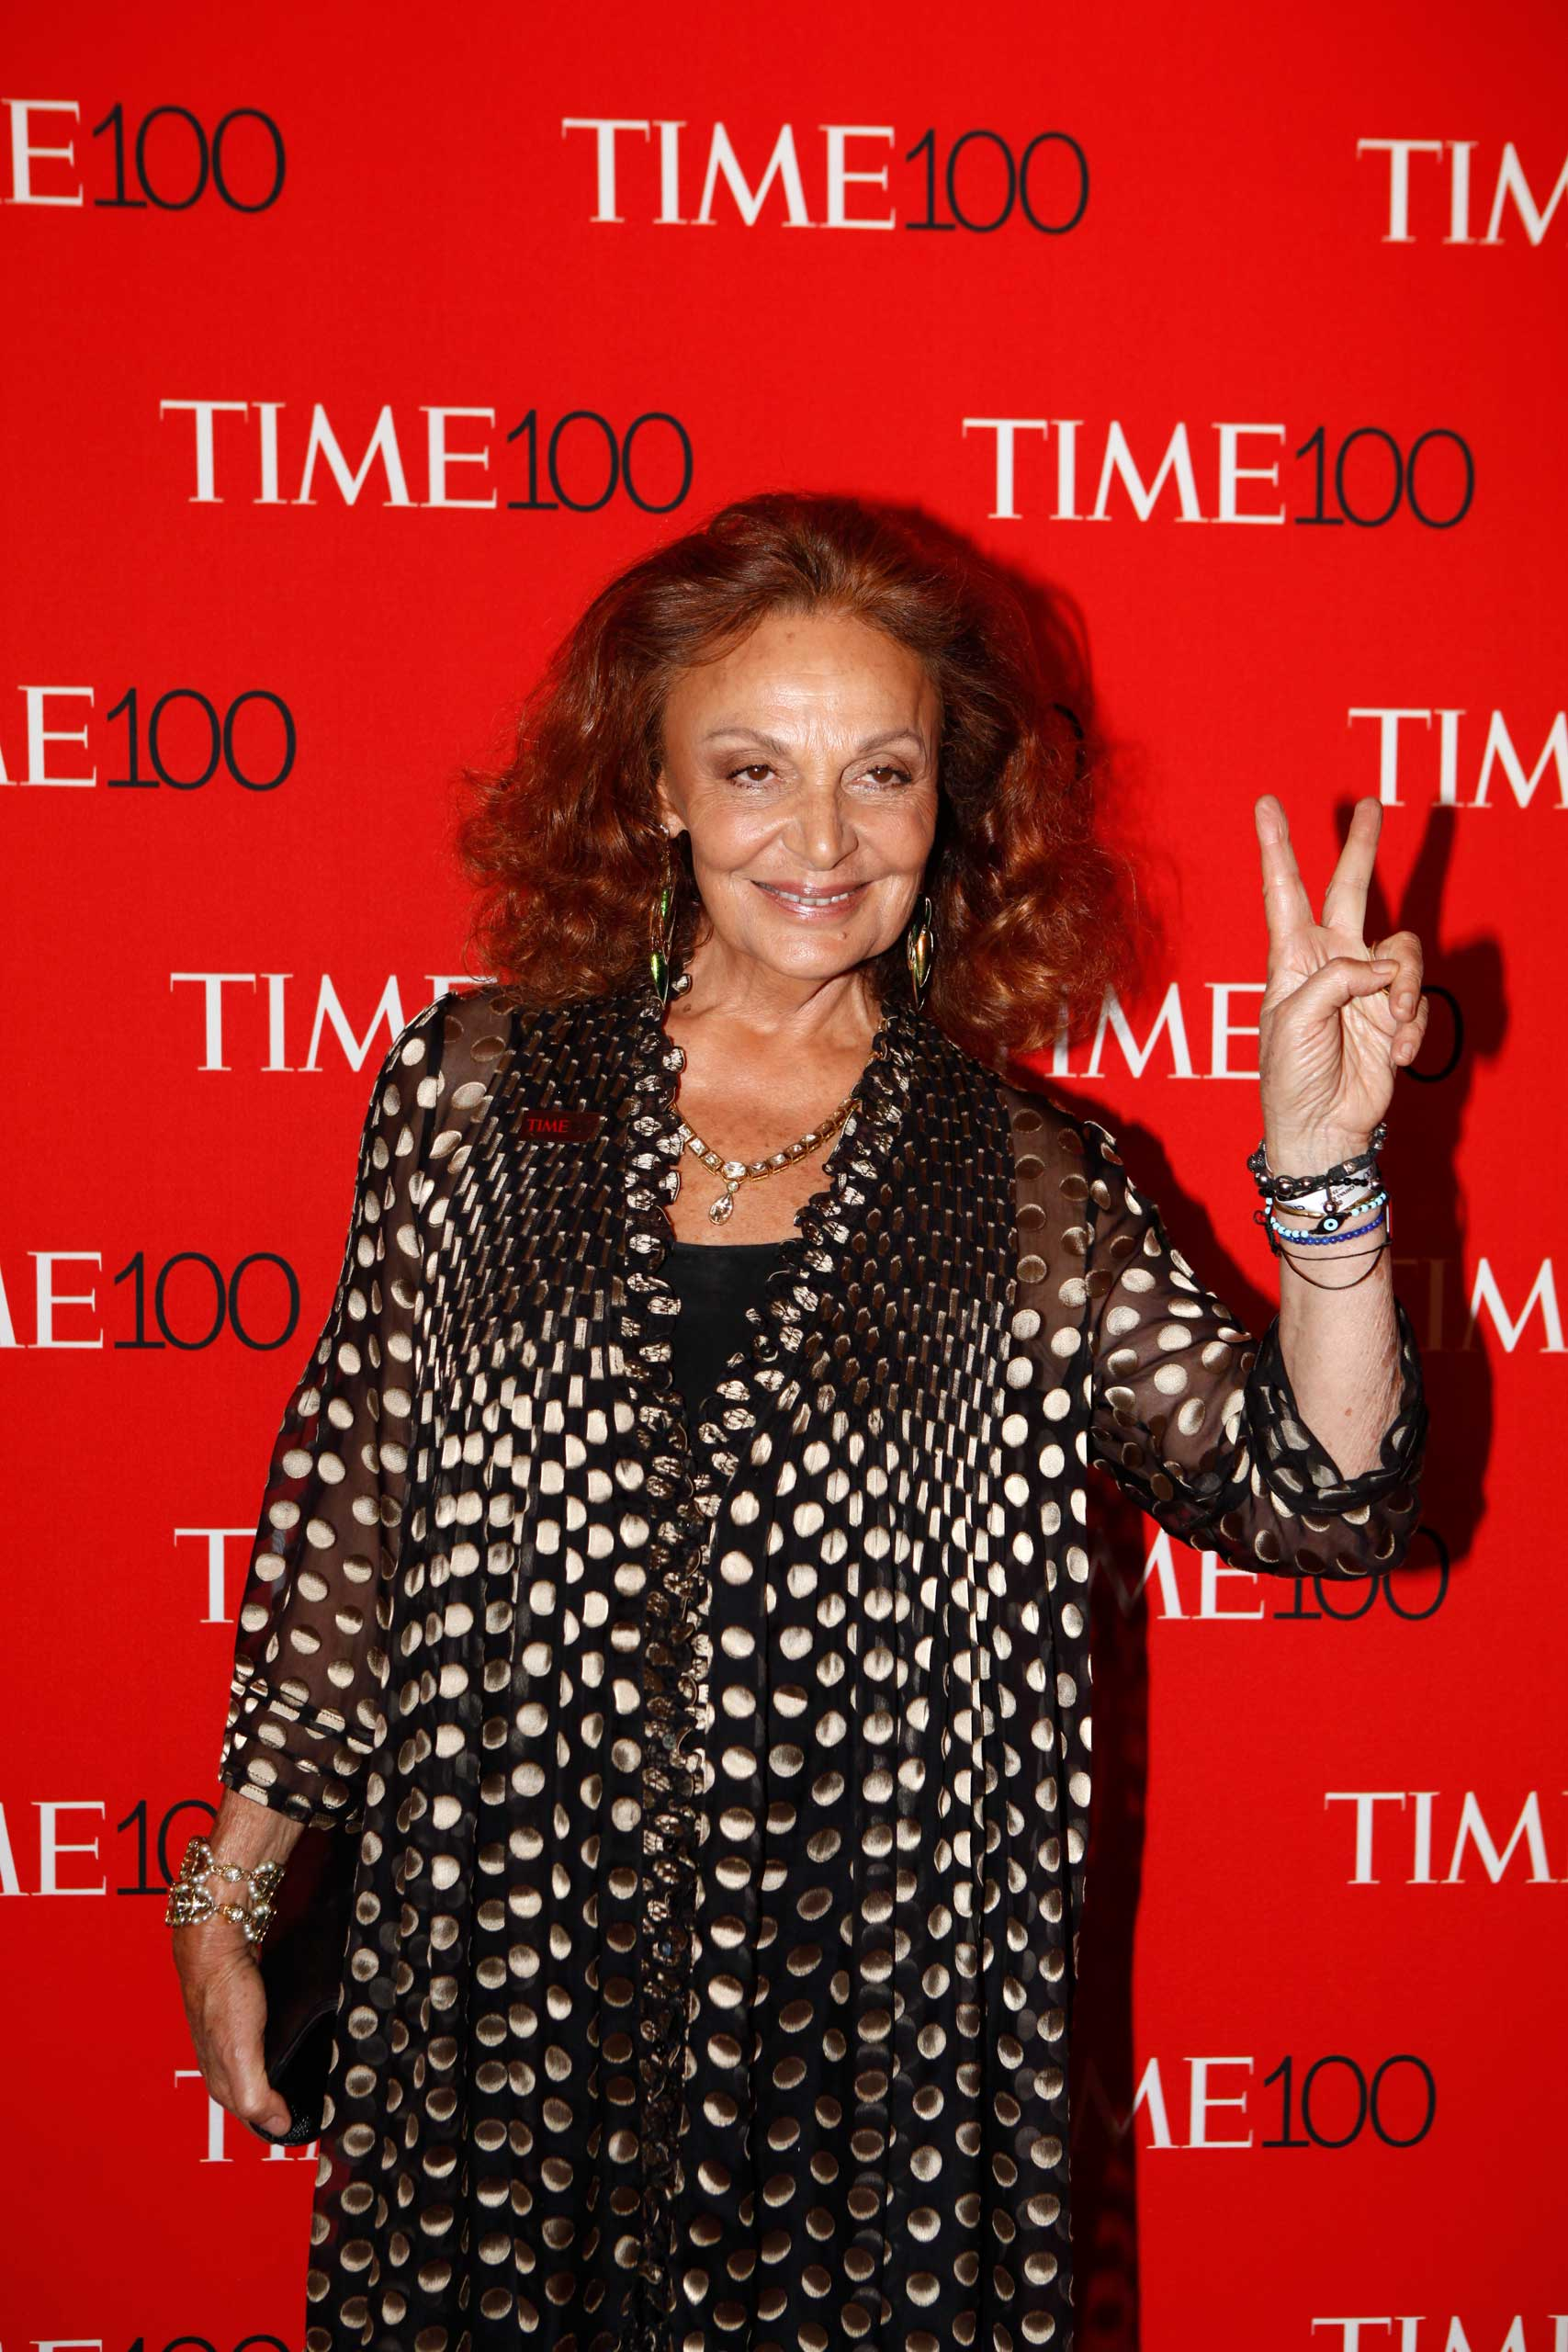 Diane Von Furstenberg attends the TIME 100 Gala at Jazz at Lincoln Center in New York City on Apr. 21, 2015.